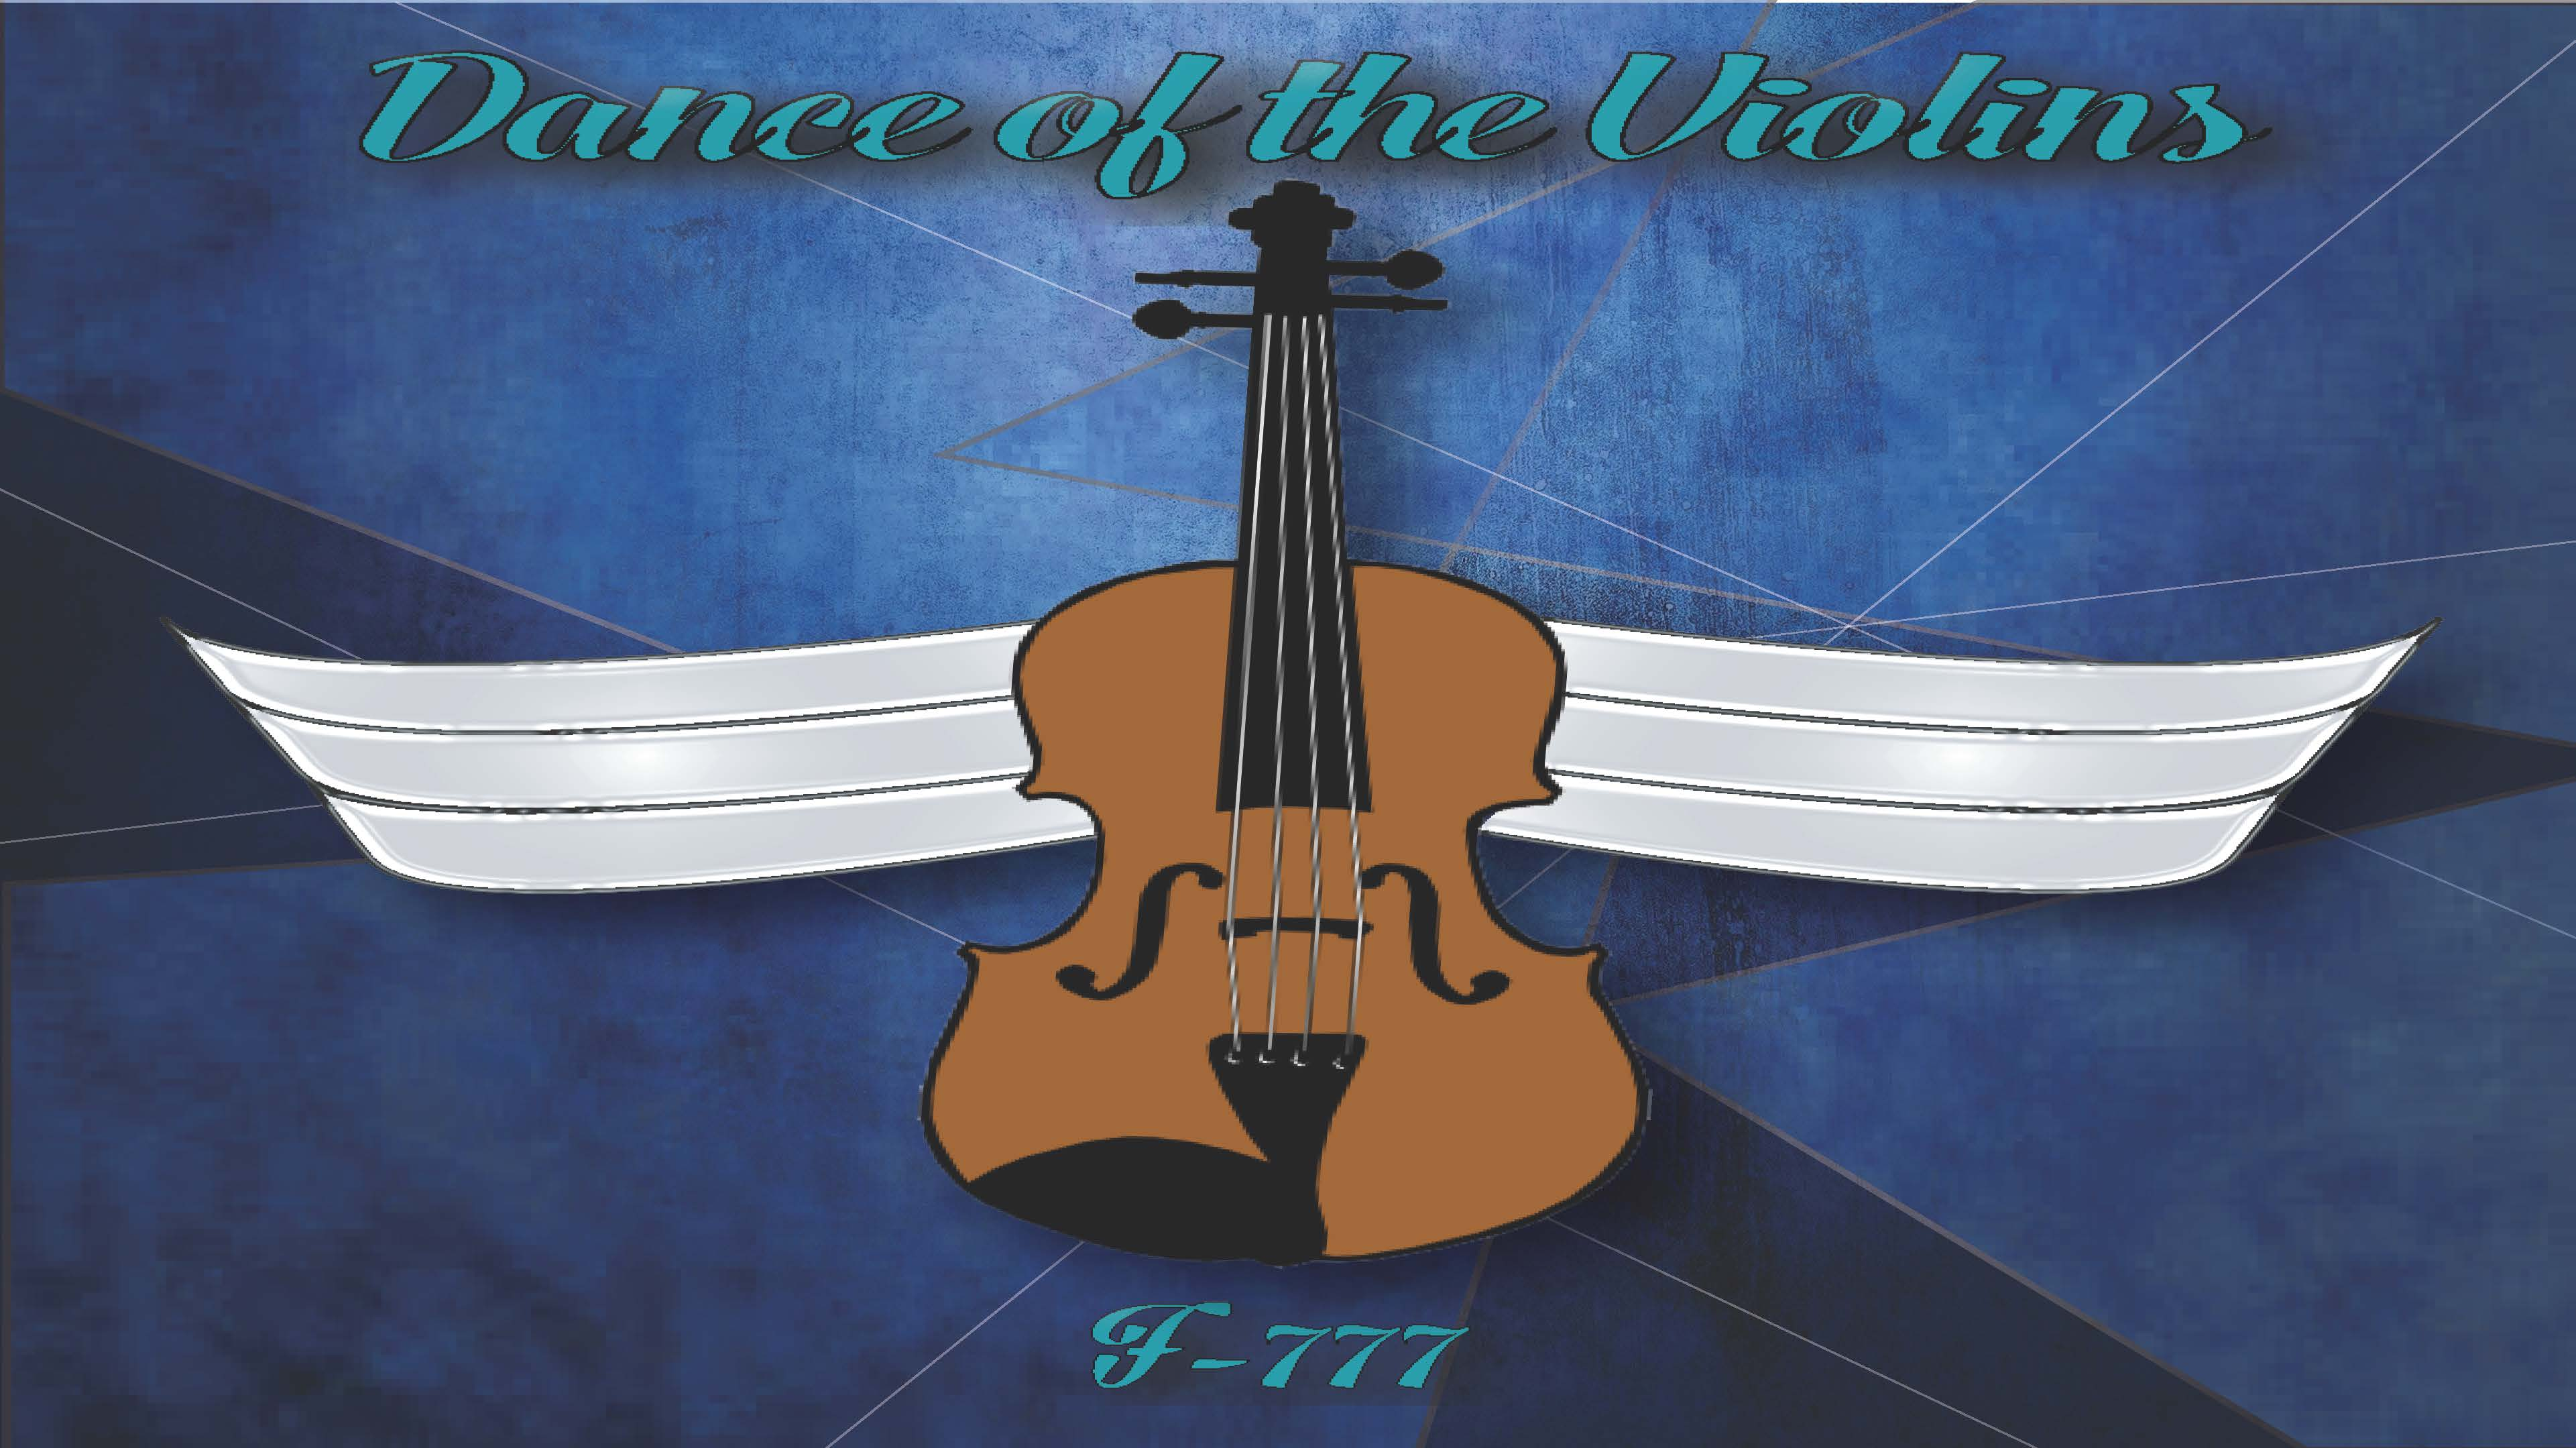 Dance of the Violins (Fan-made album art)